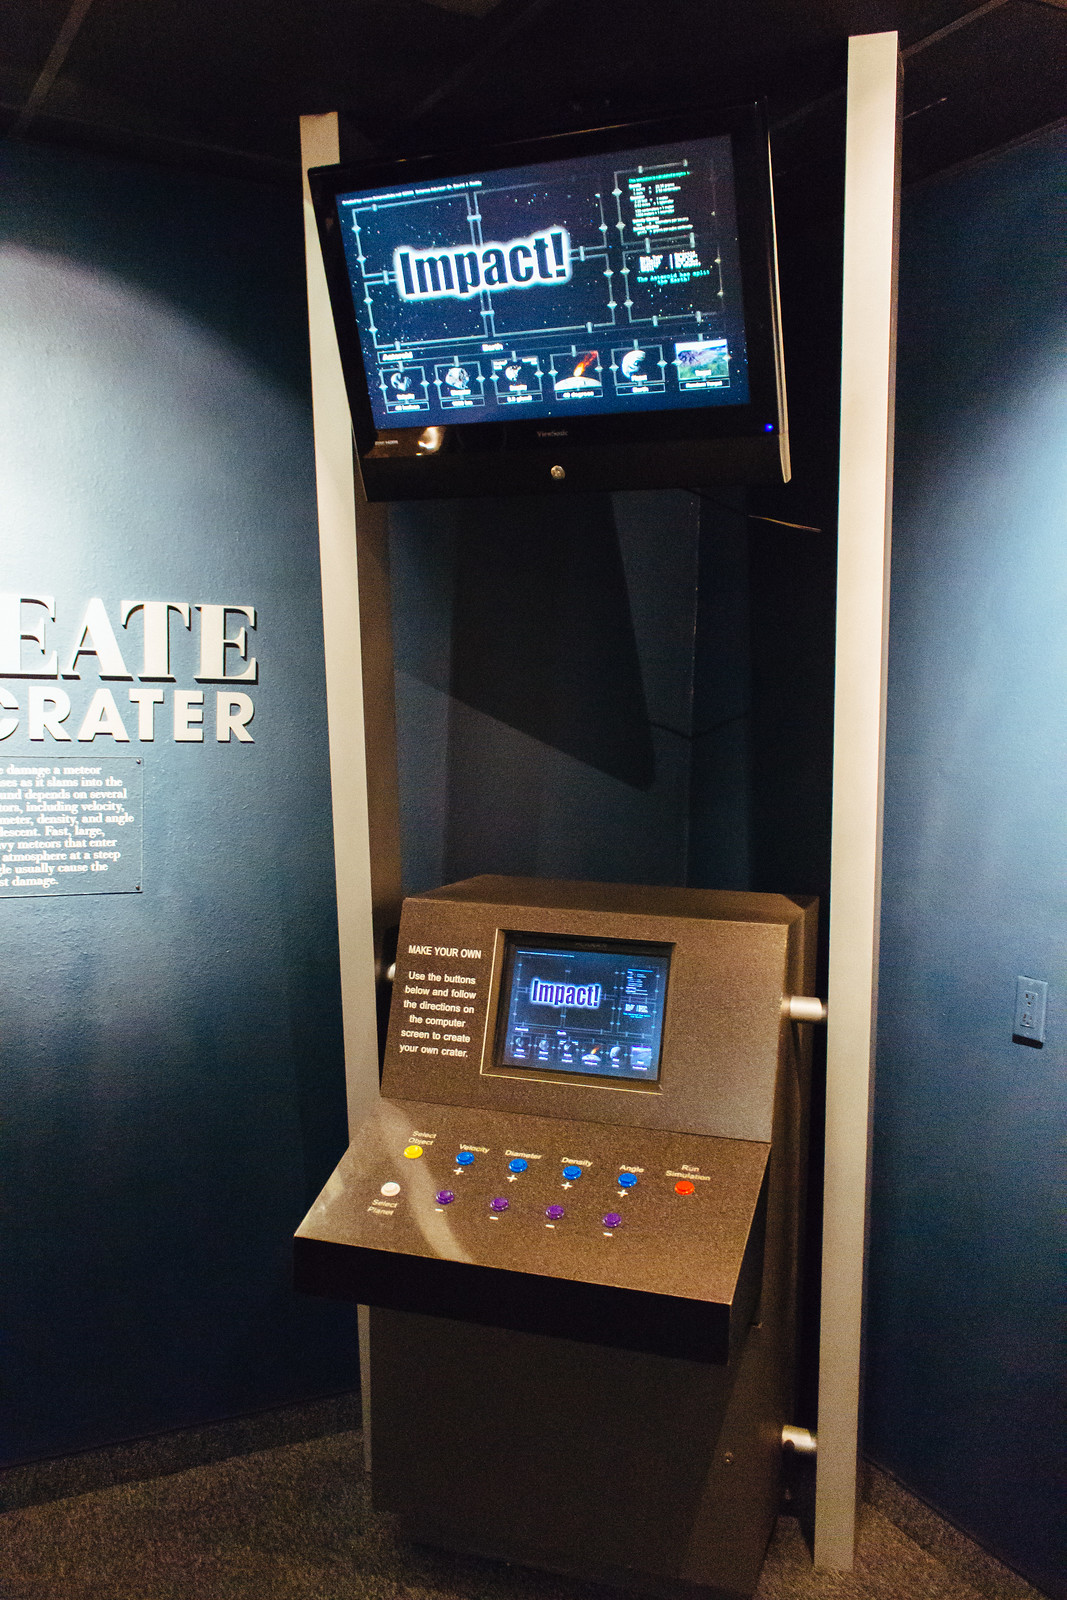 Interactive museum exhibit with two screens and buttons